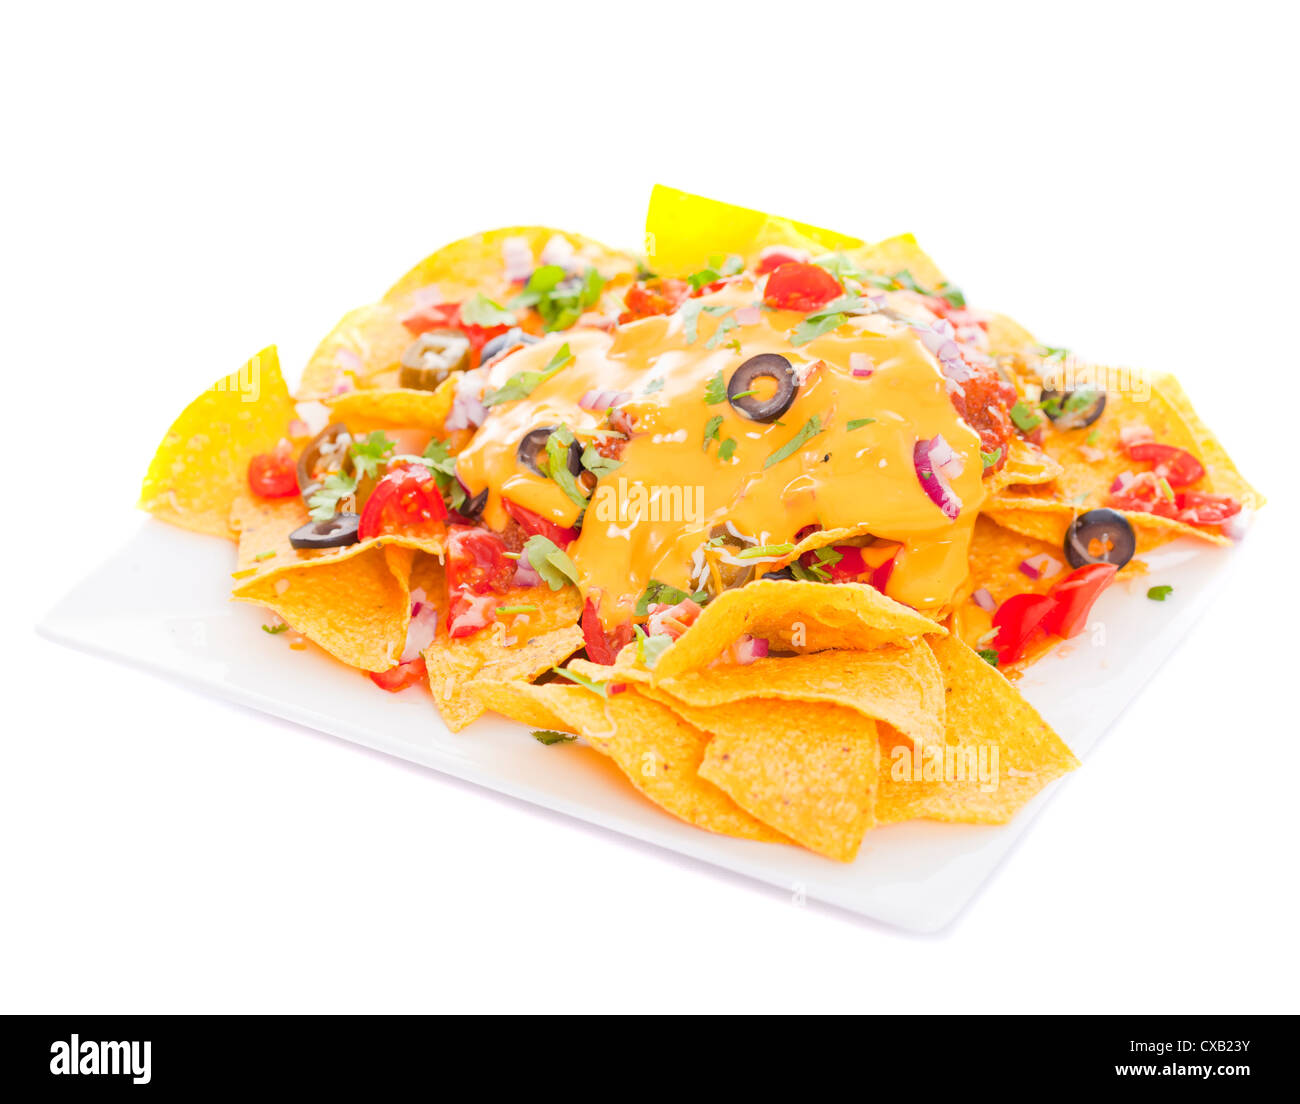 Plate of fresh nachos with a spicy jalapeno cheese sauce - Stock Image